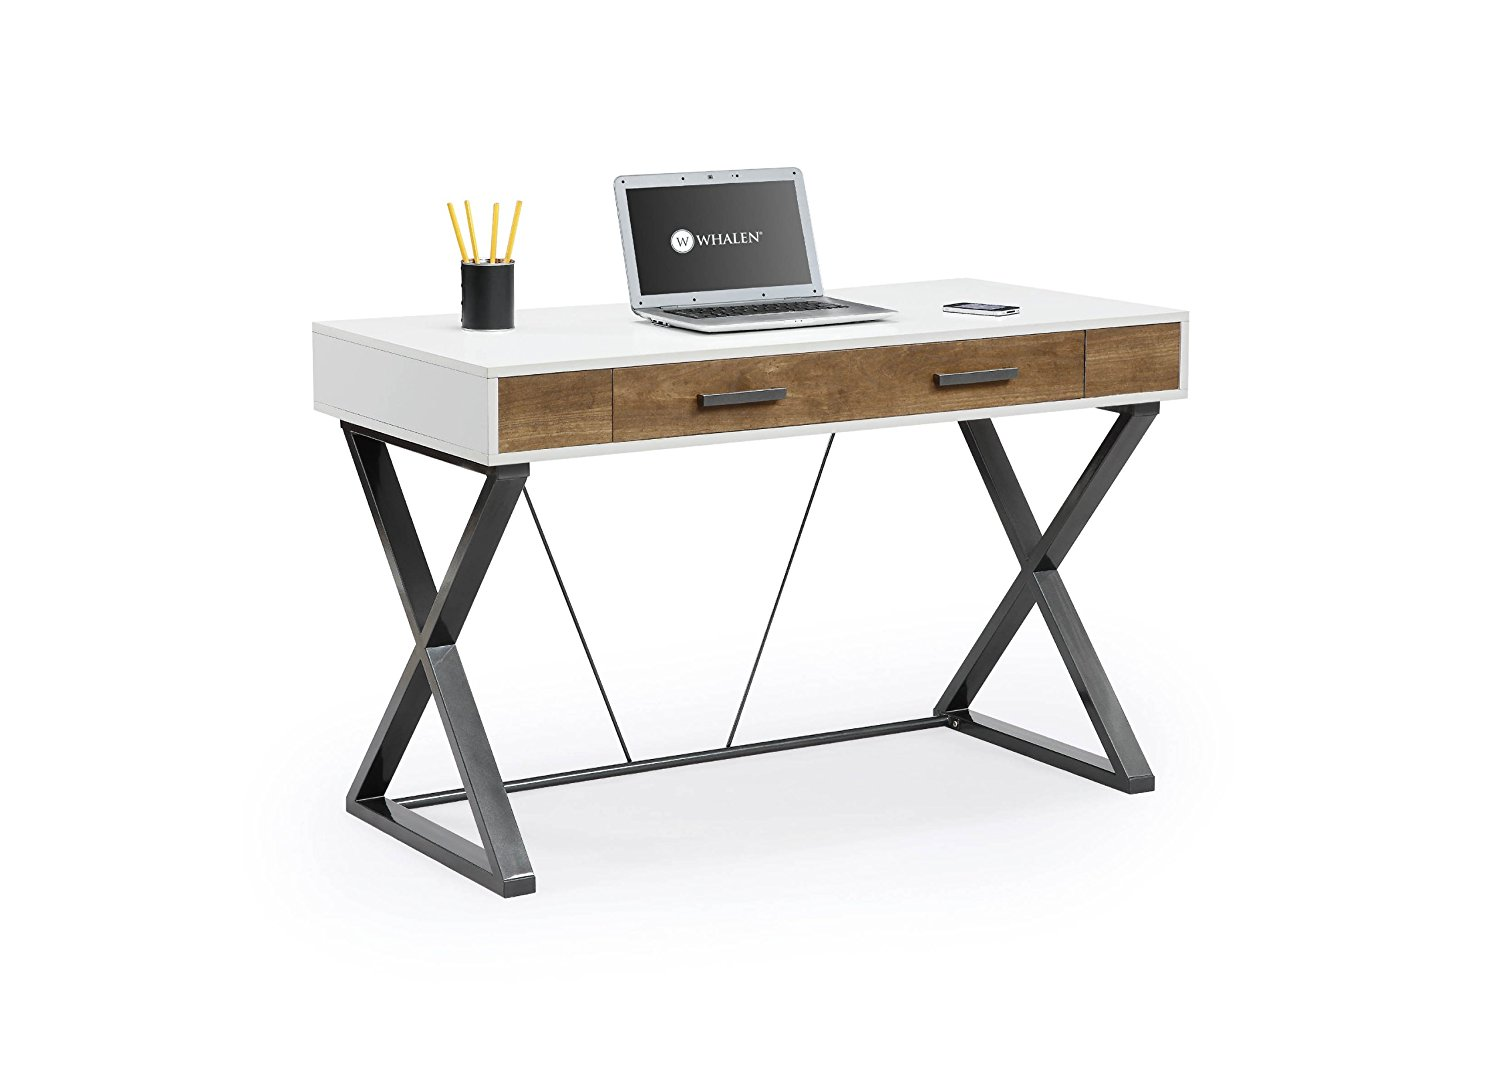 Whalen Samford Contemporary Desk $260